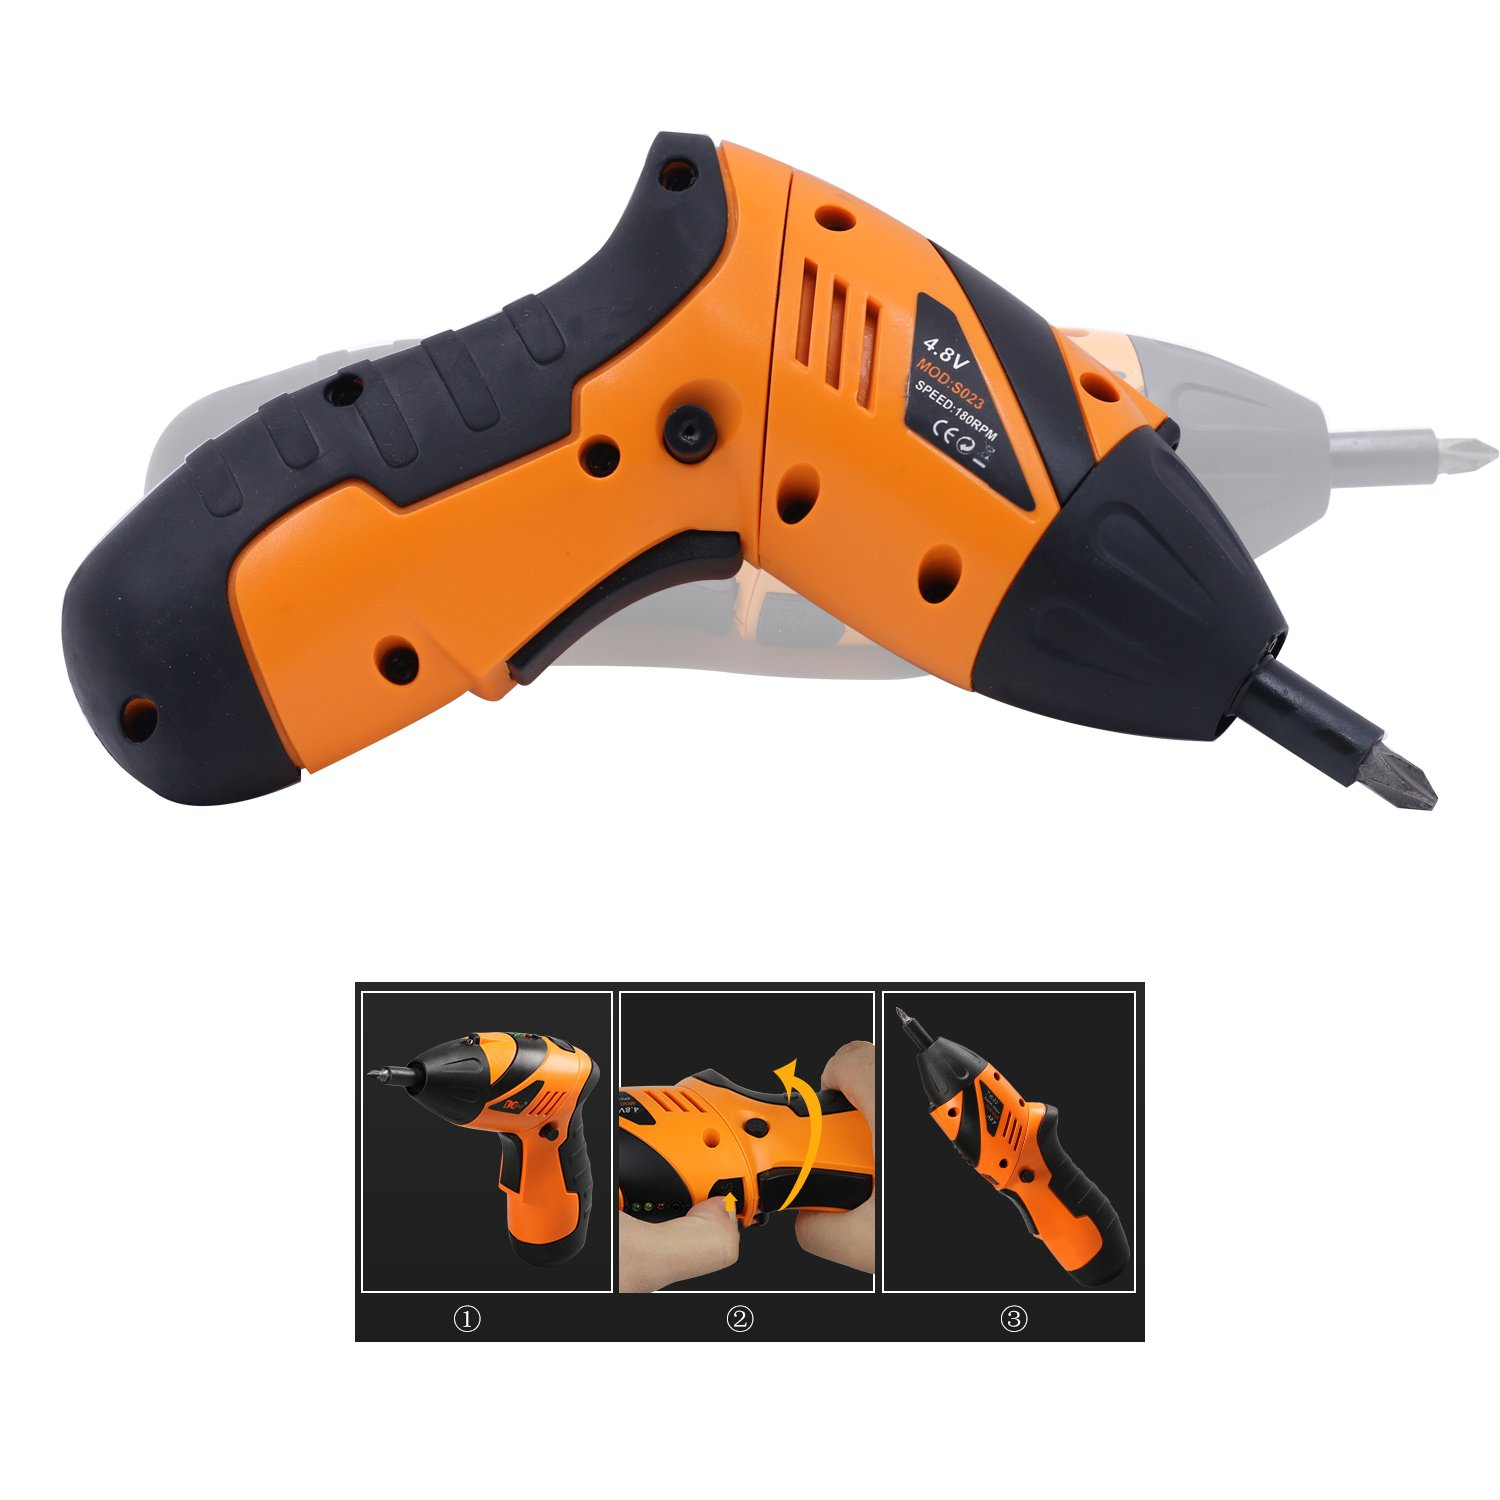 Exxacttorch Cordless Rechargeable Screwdriver 4.8-Volt 600mAh Ni-Cd with LED,34pcs Driver Bits and 9 pcs Extension Bit Holder,USB Charging Cable Included